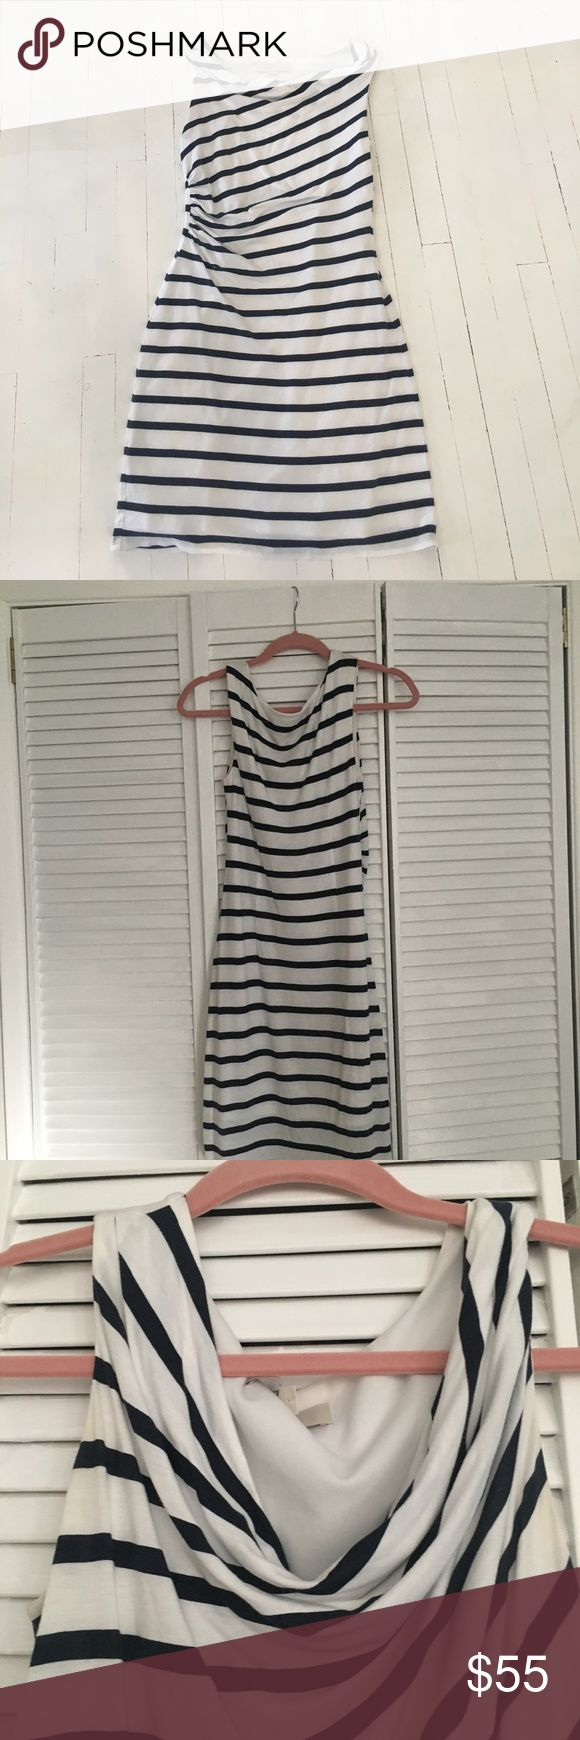 Flattering cowl neck, lined striped Loft dress. Ann taylor Loft dress. Subtle yet sexy. Great going out dress or throw blazer over it for office. Small stain. Barely noticeable due to draping. I didn't even see it until I laid dress out flat. LOFT Dresses Mini